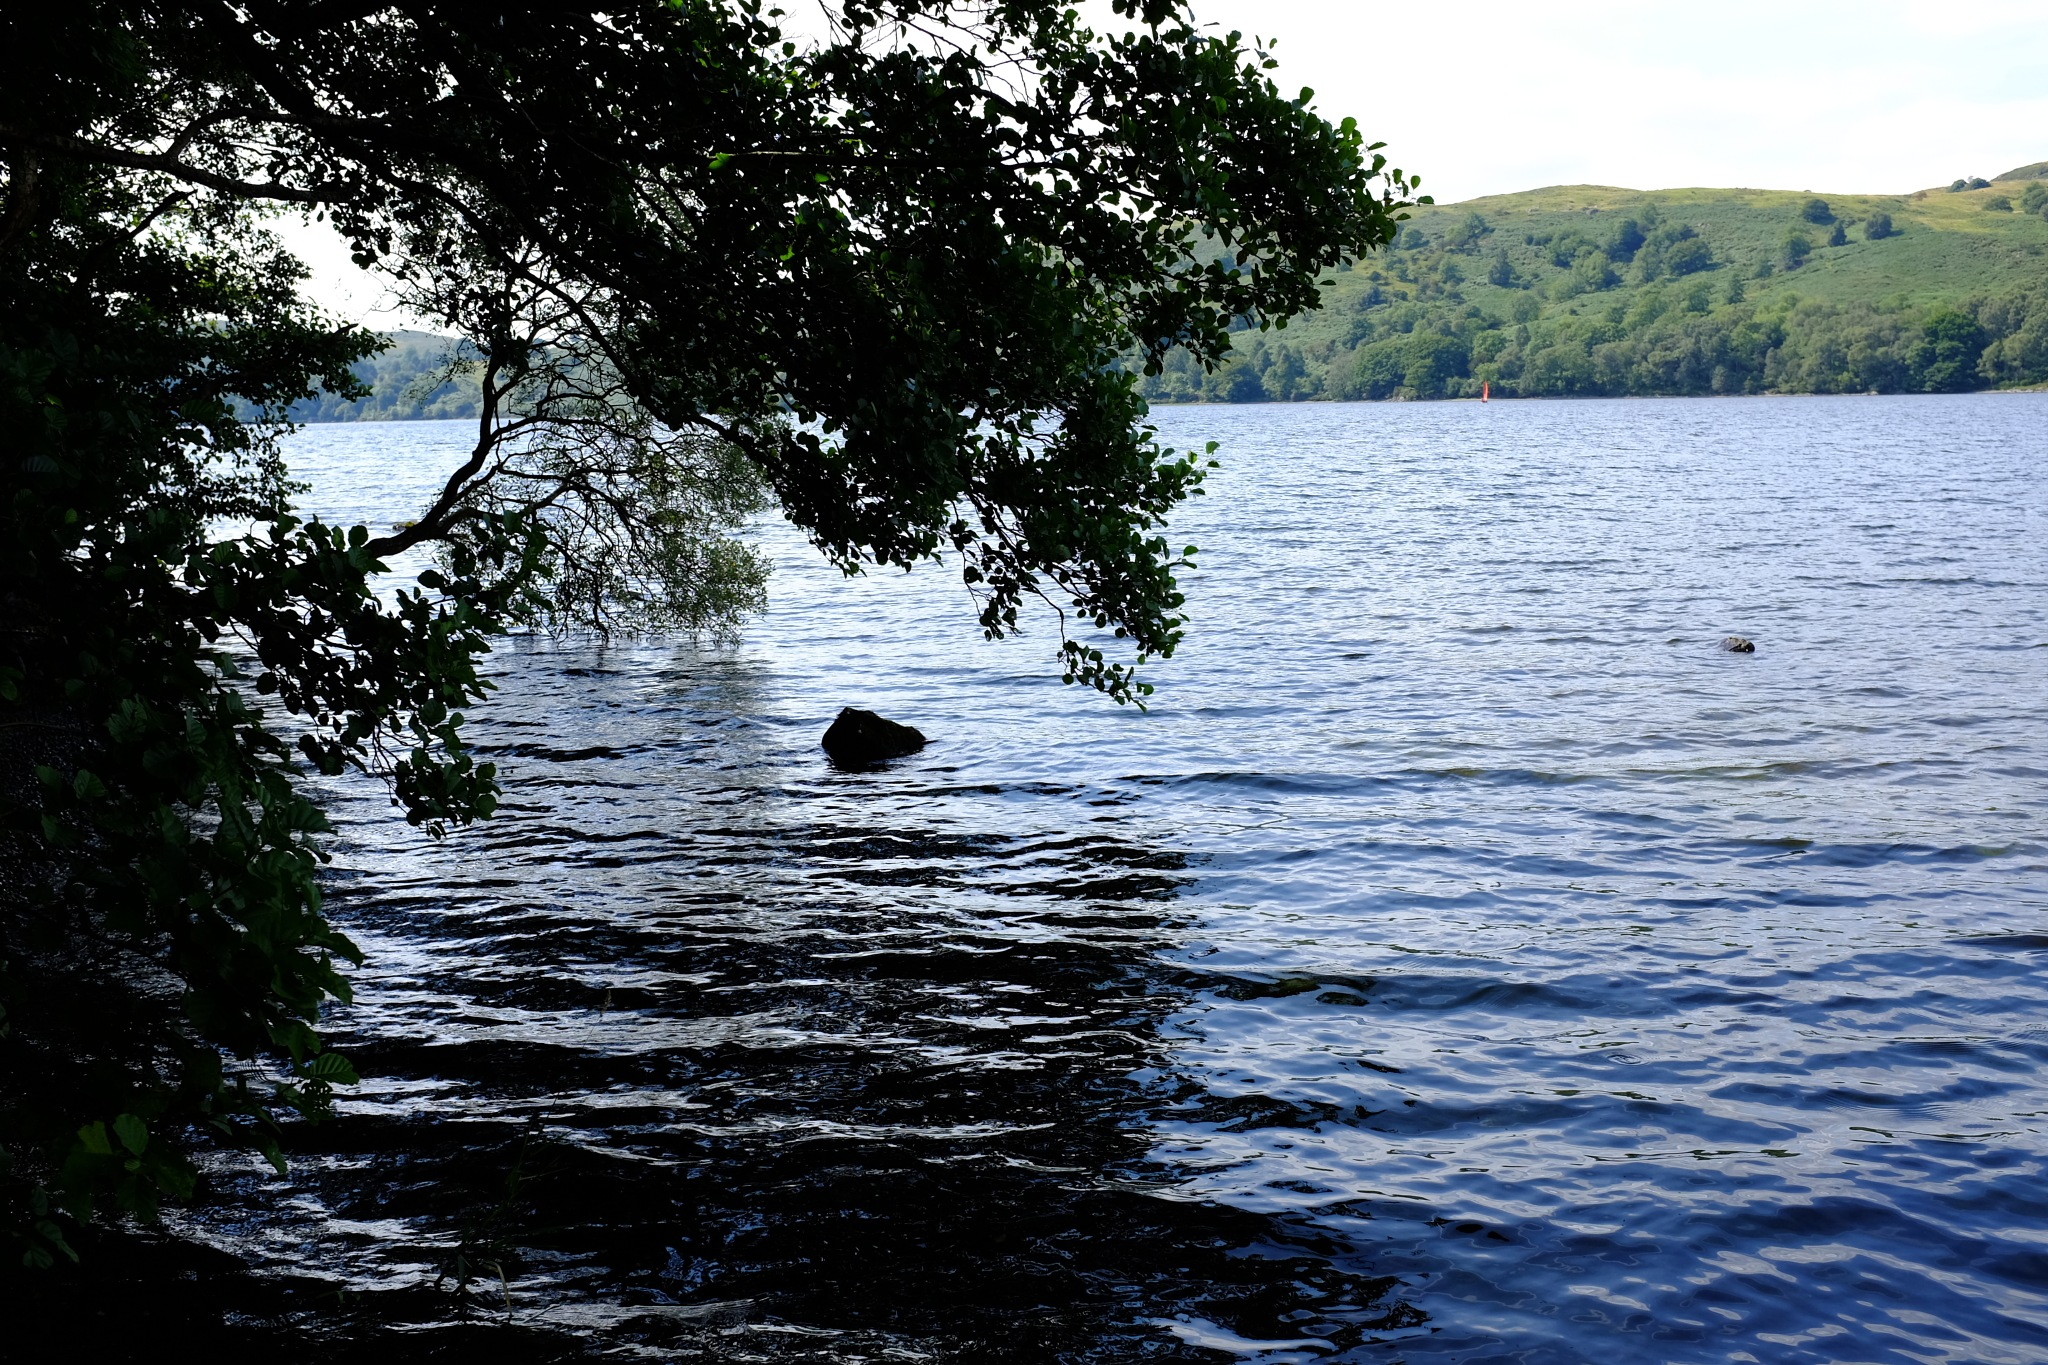 Coniston Water Cumbria uk...080601 by Michael jjg